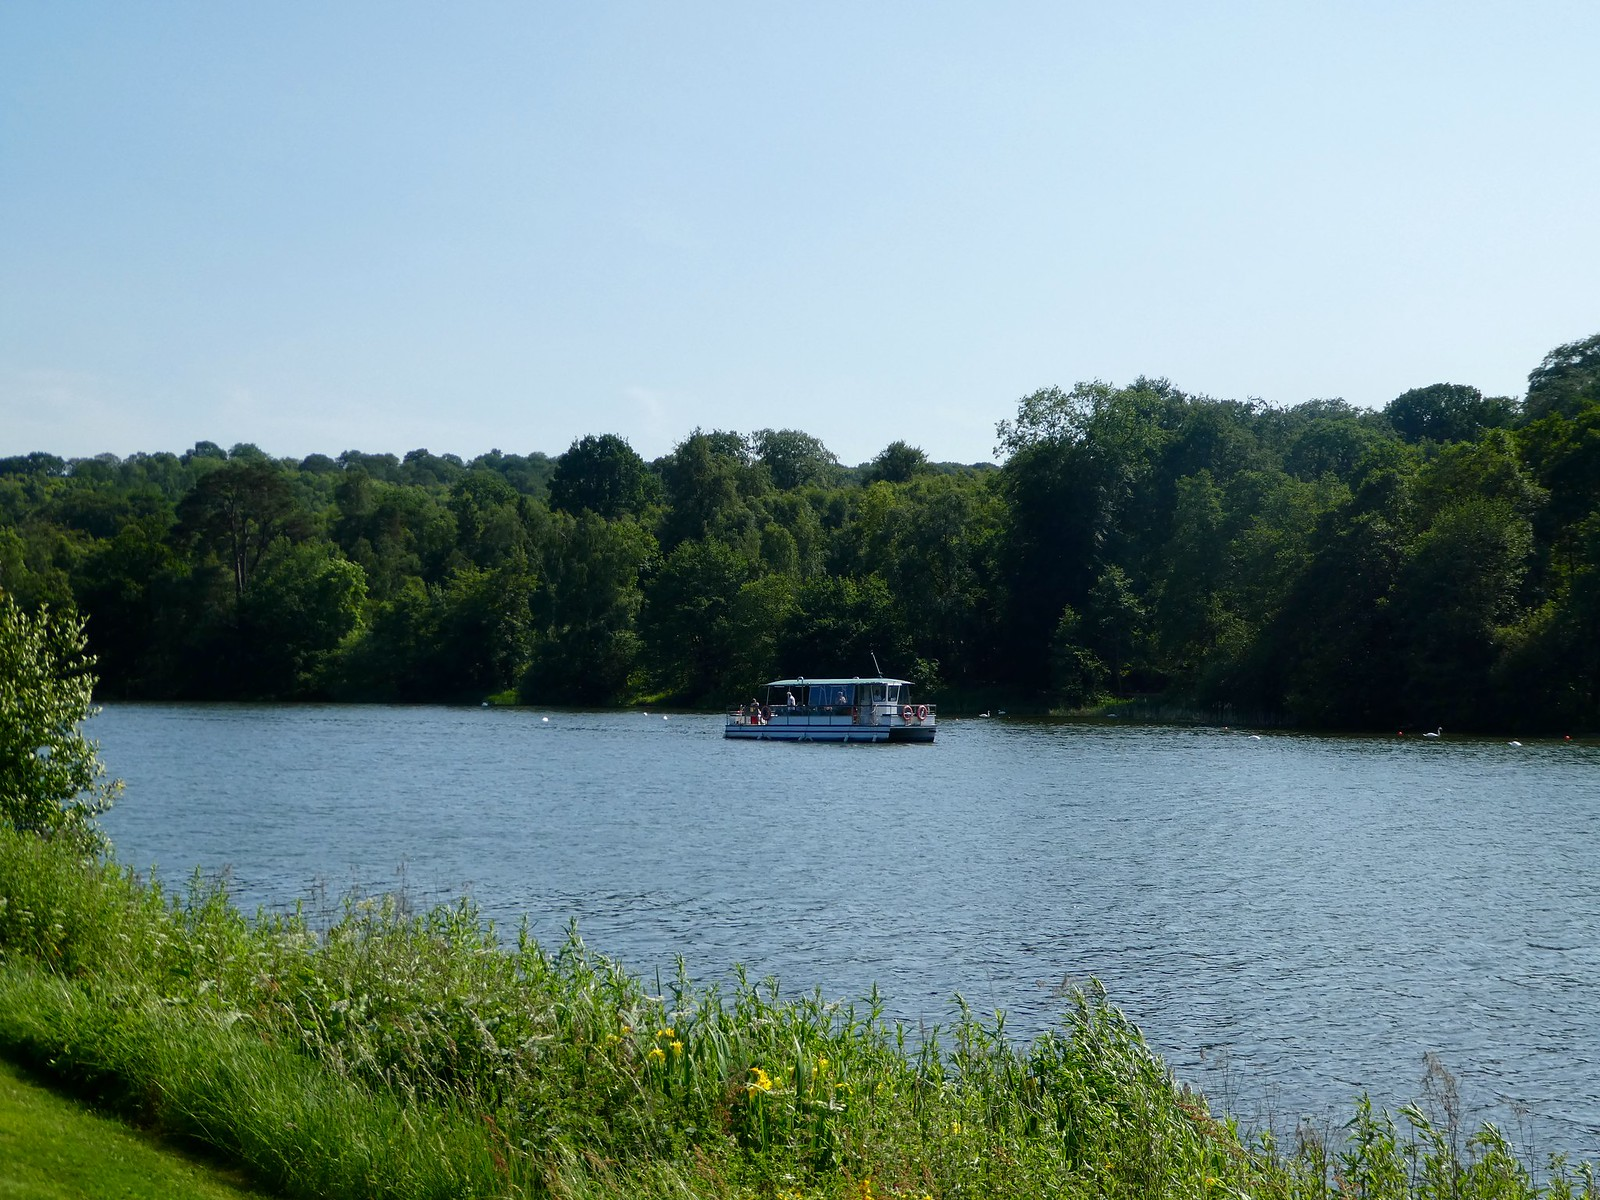 Miss Elizabeth catamaran on the Trentham Lake